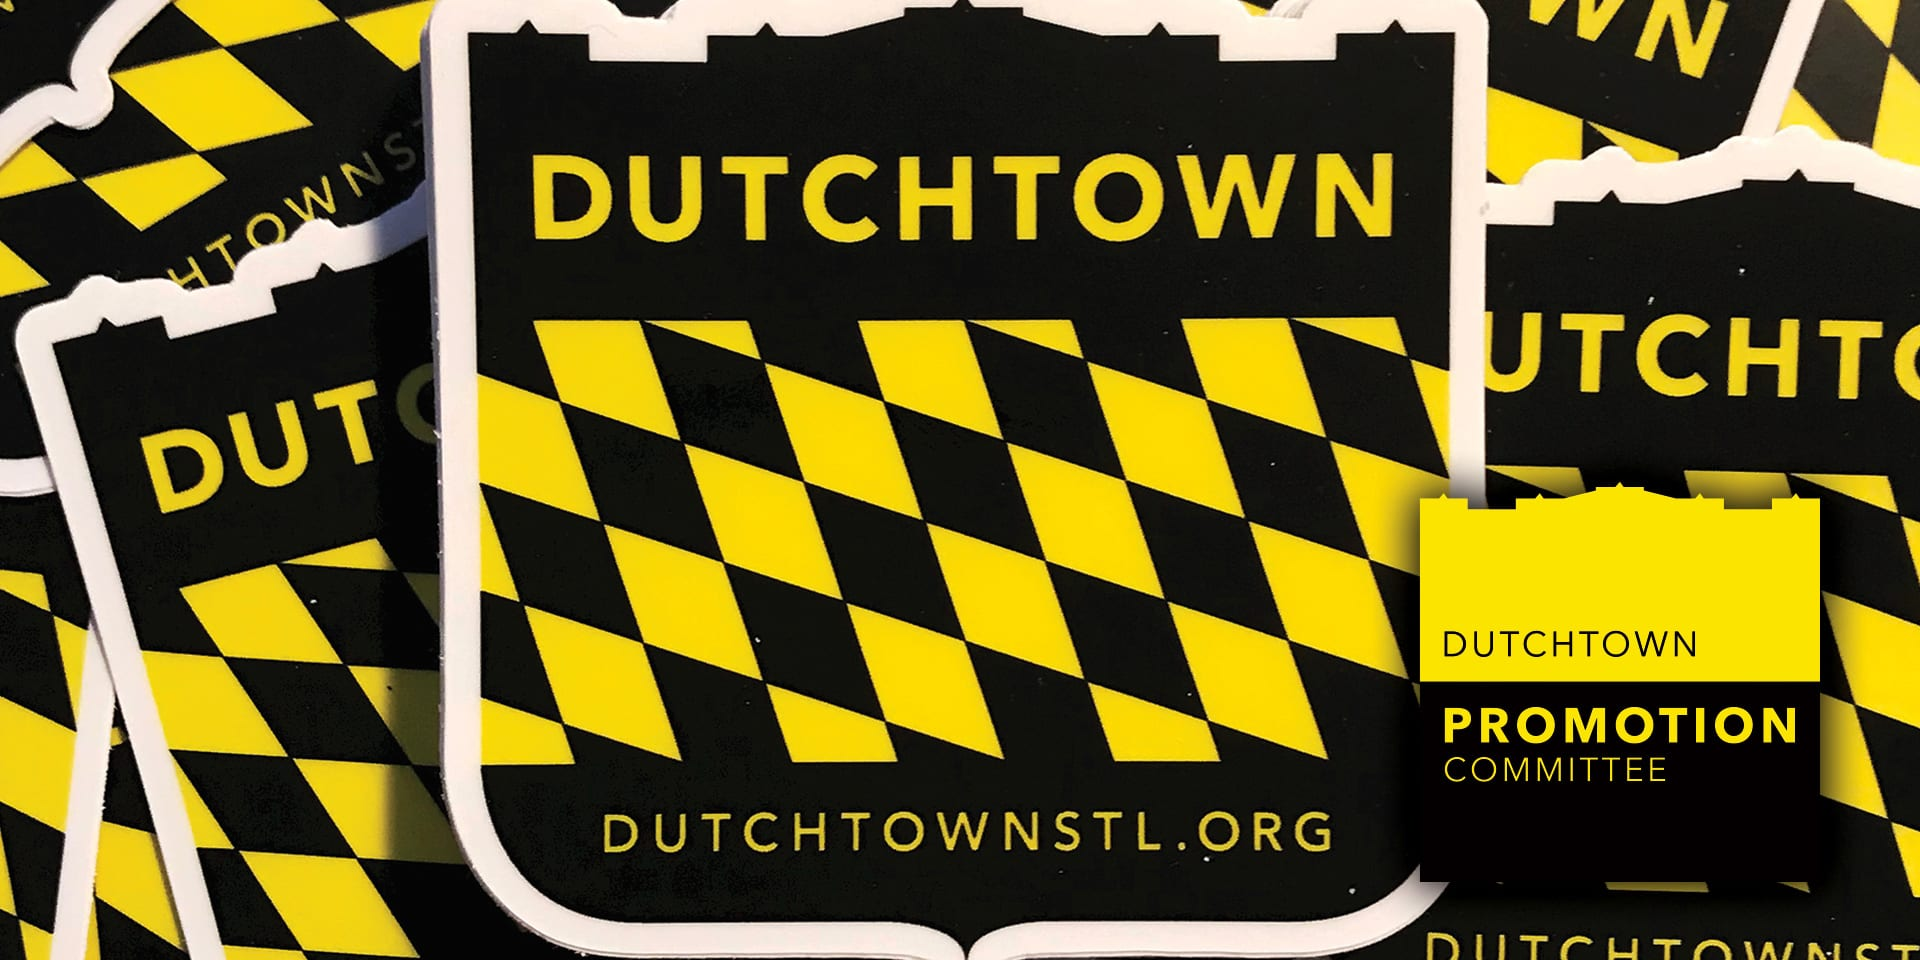 Dutchtown Promotion Committee.